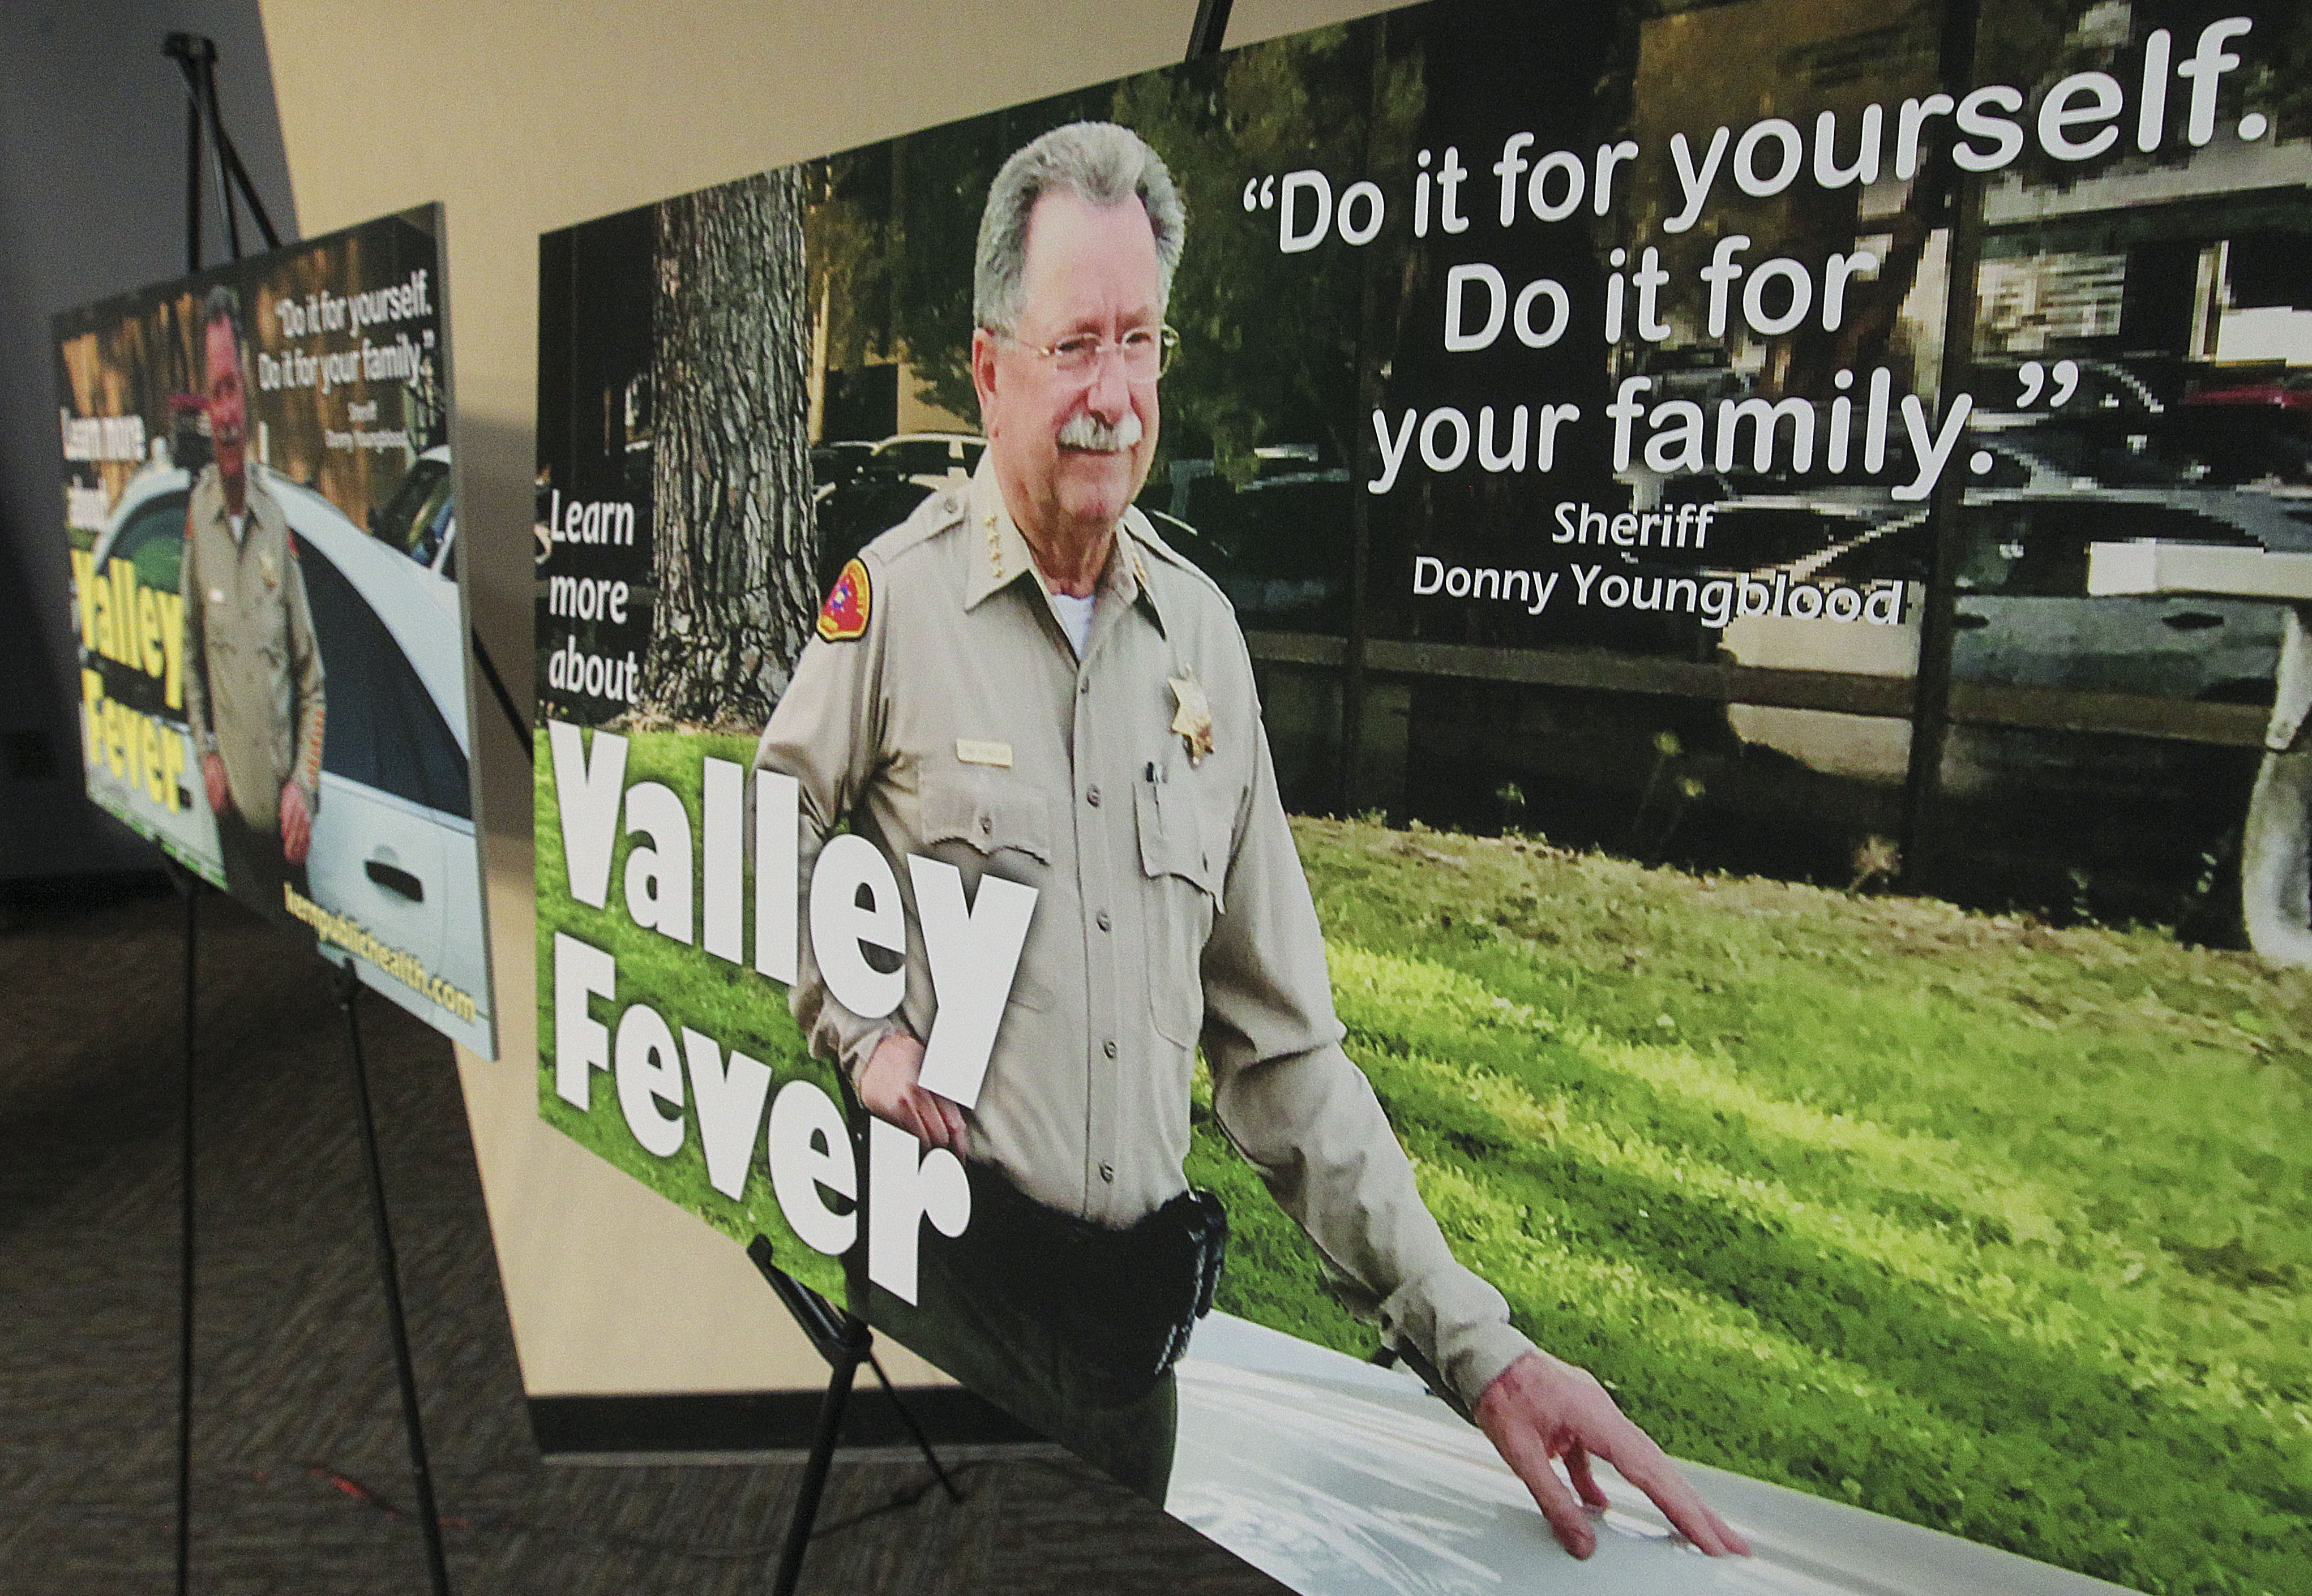 Sheriff Donny Youngblood stars in new valley fever PSA